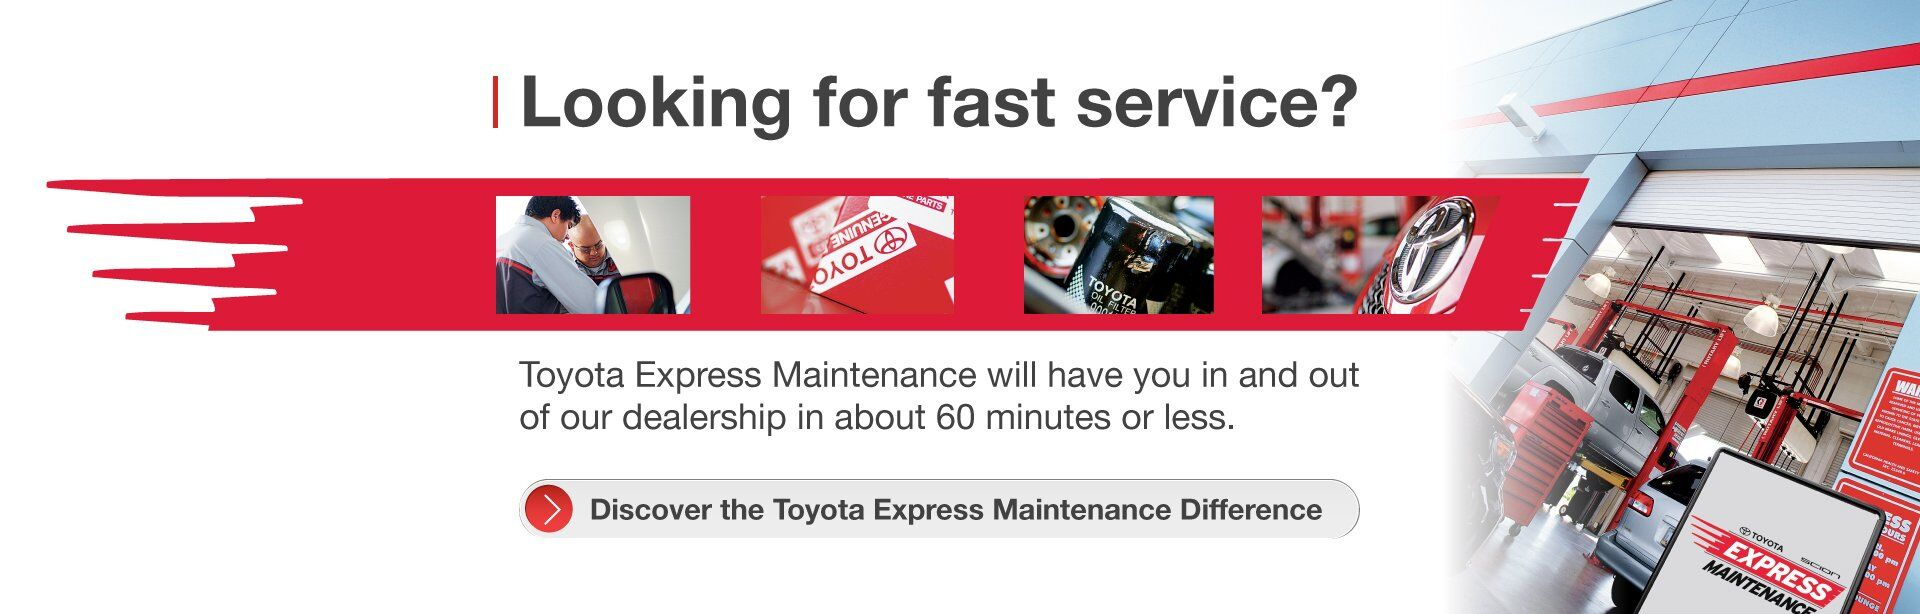 Toyota Express Maintenance TXM